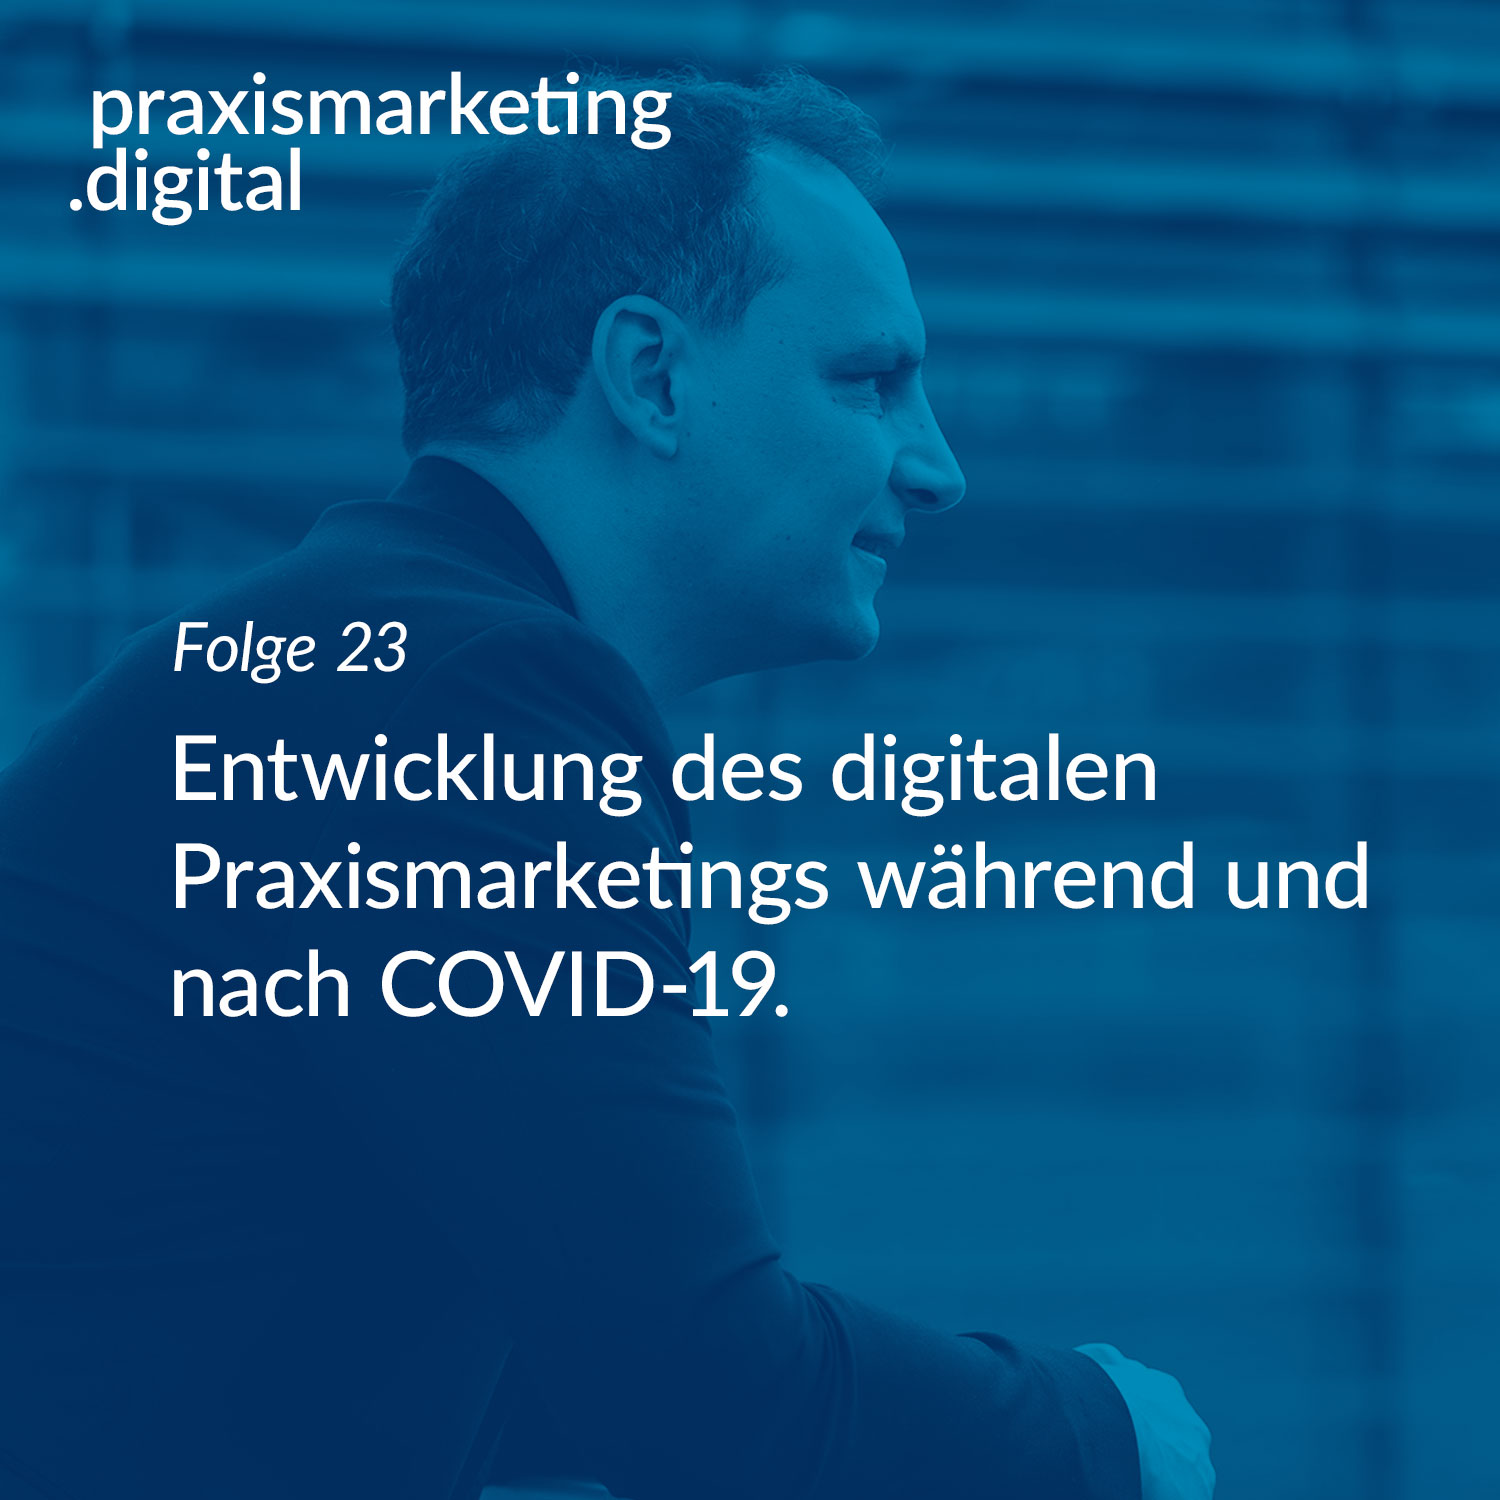 Digitales Praxismarketing Covid-19